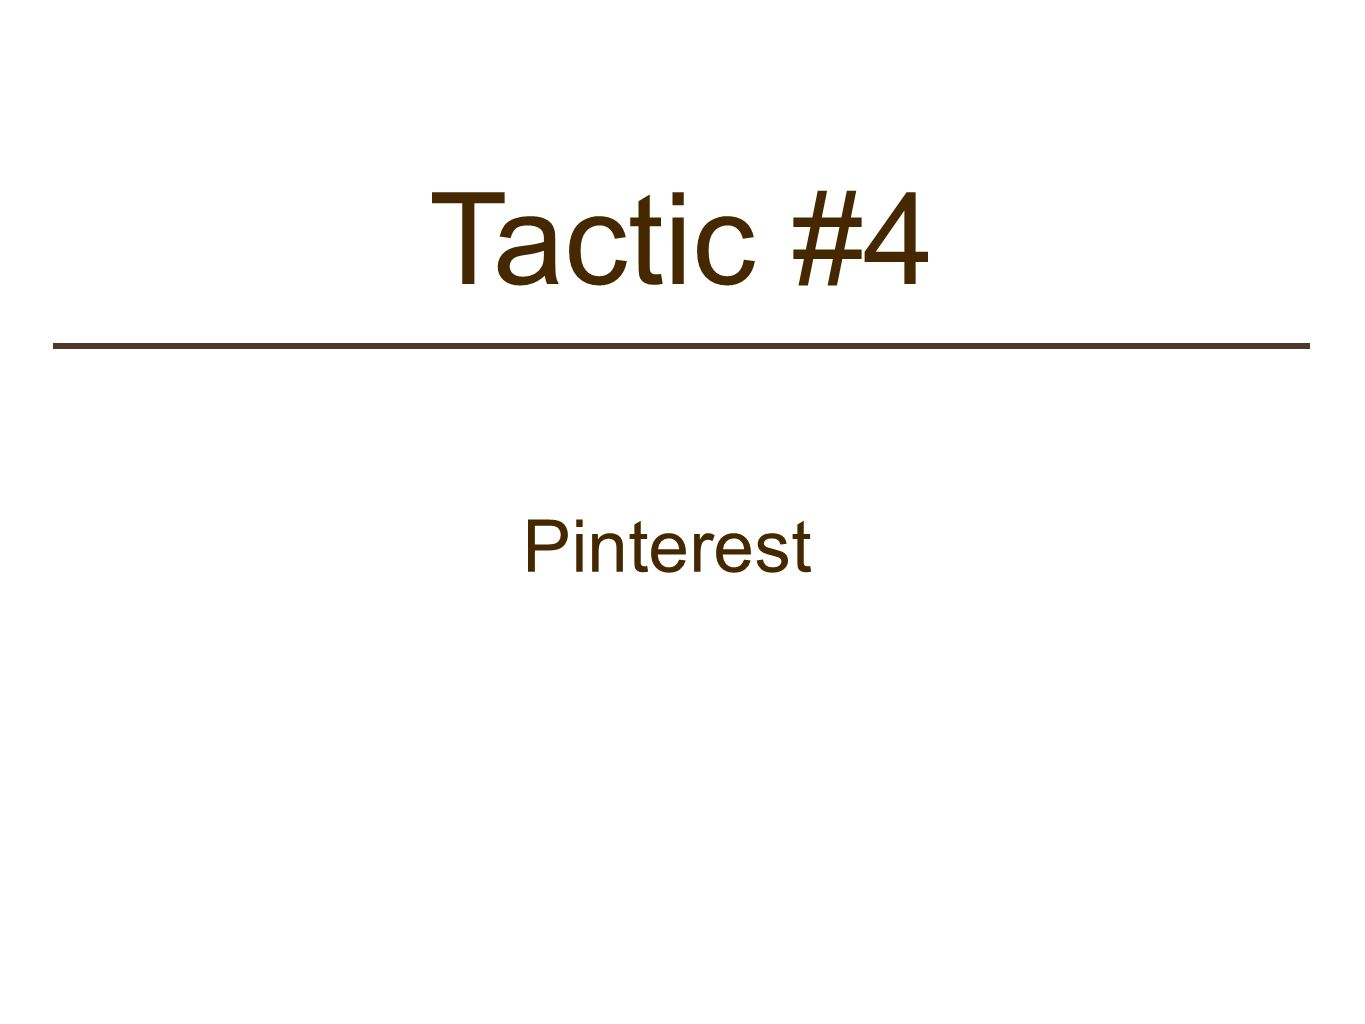 Tactic #4 Pinterest